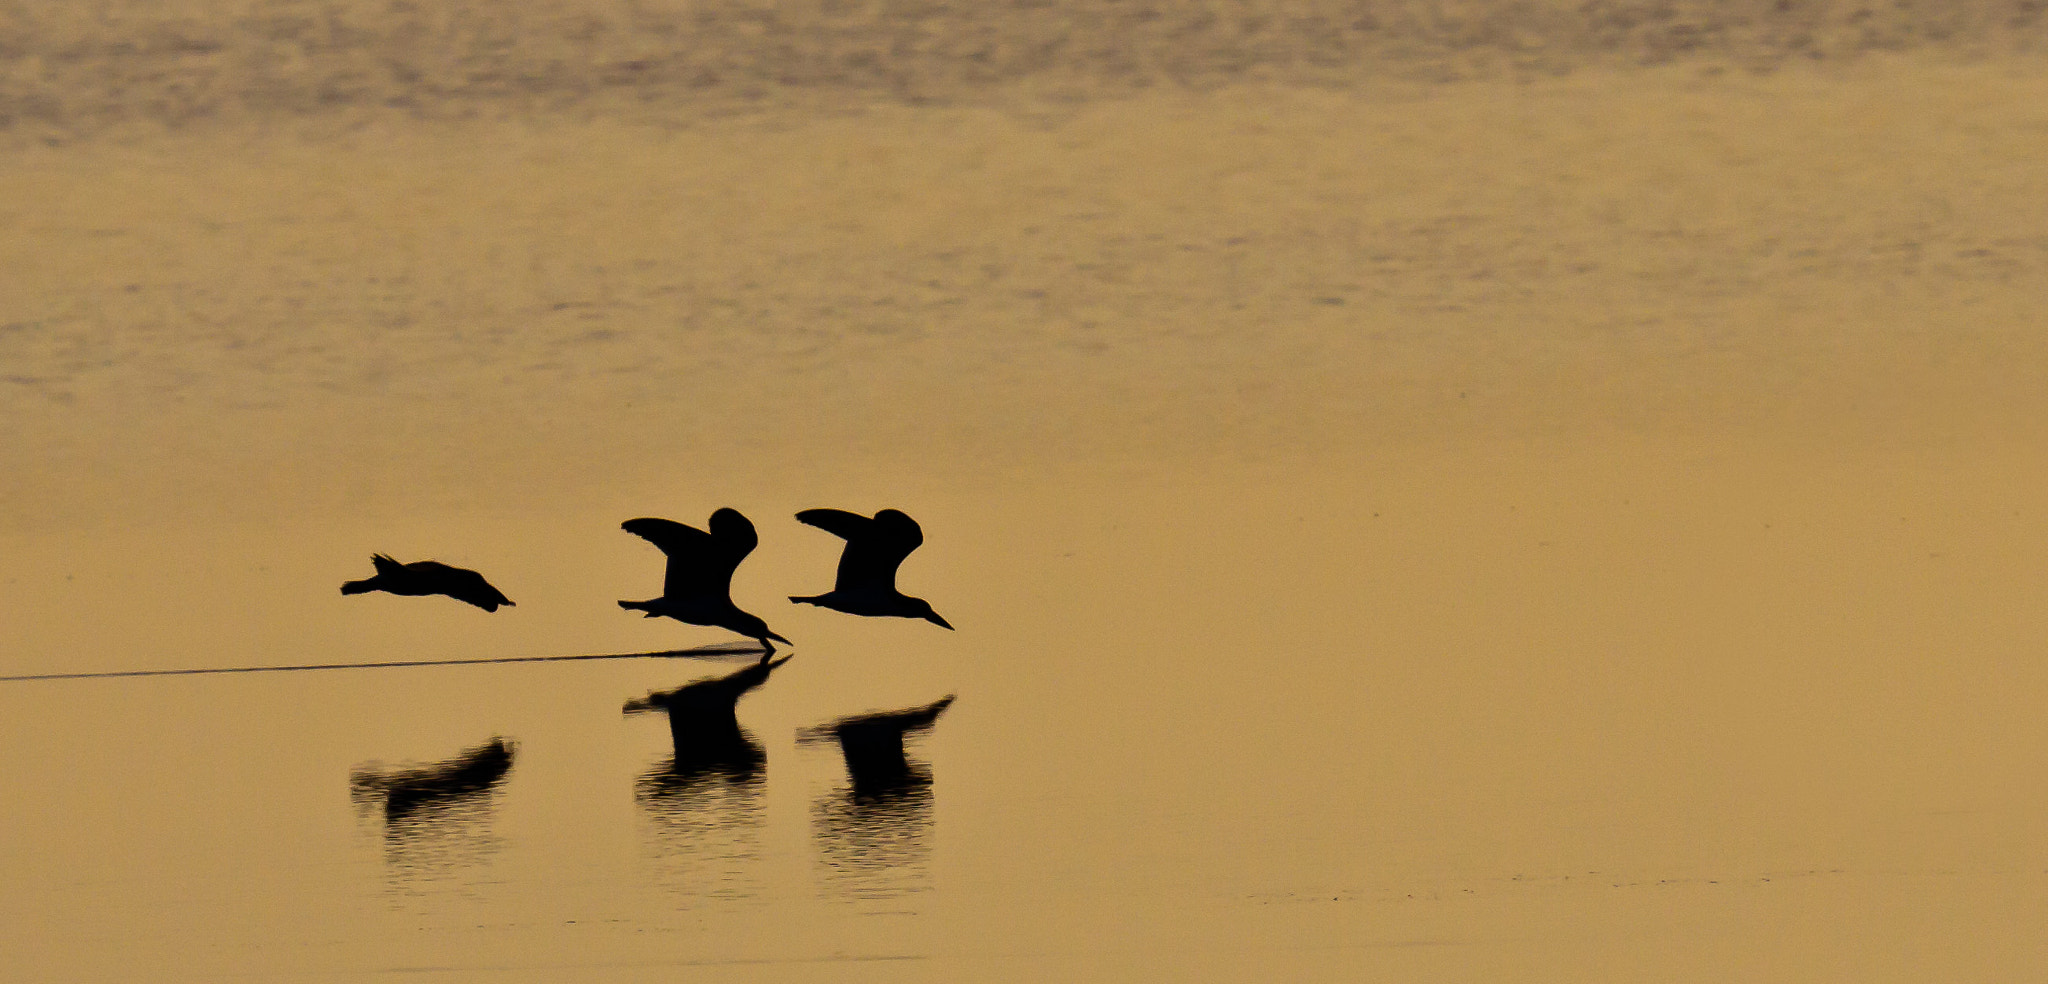 Photograph Skimmers at dawn by Tom Grigsby on 500px